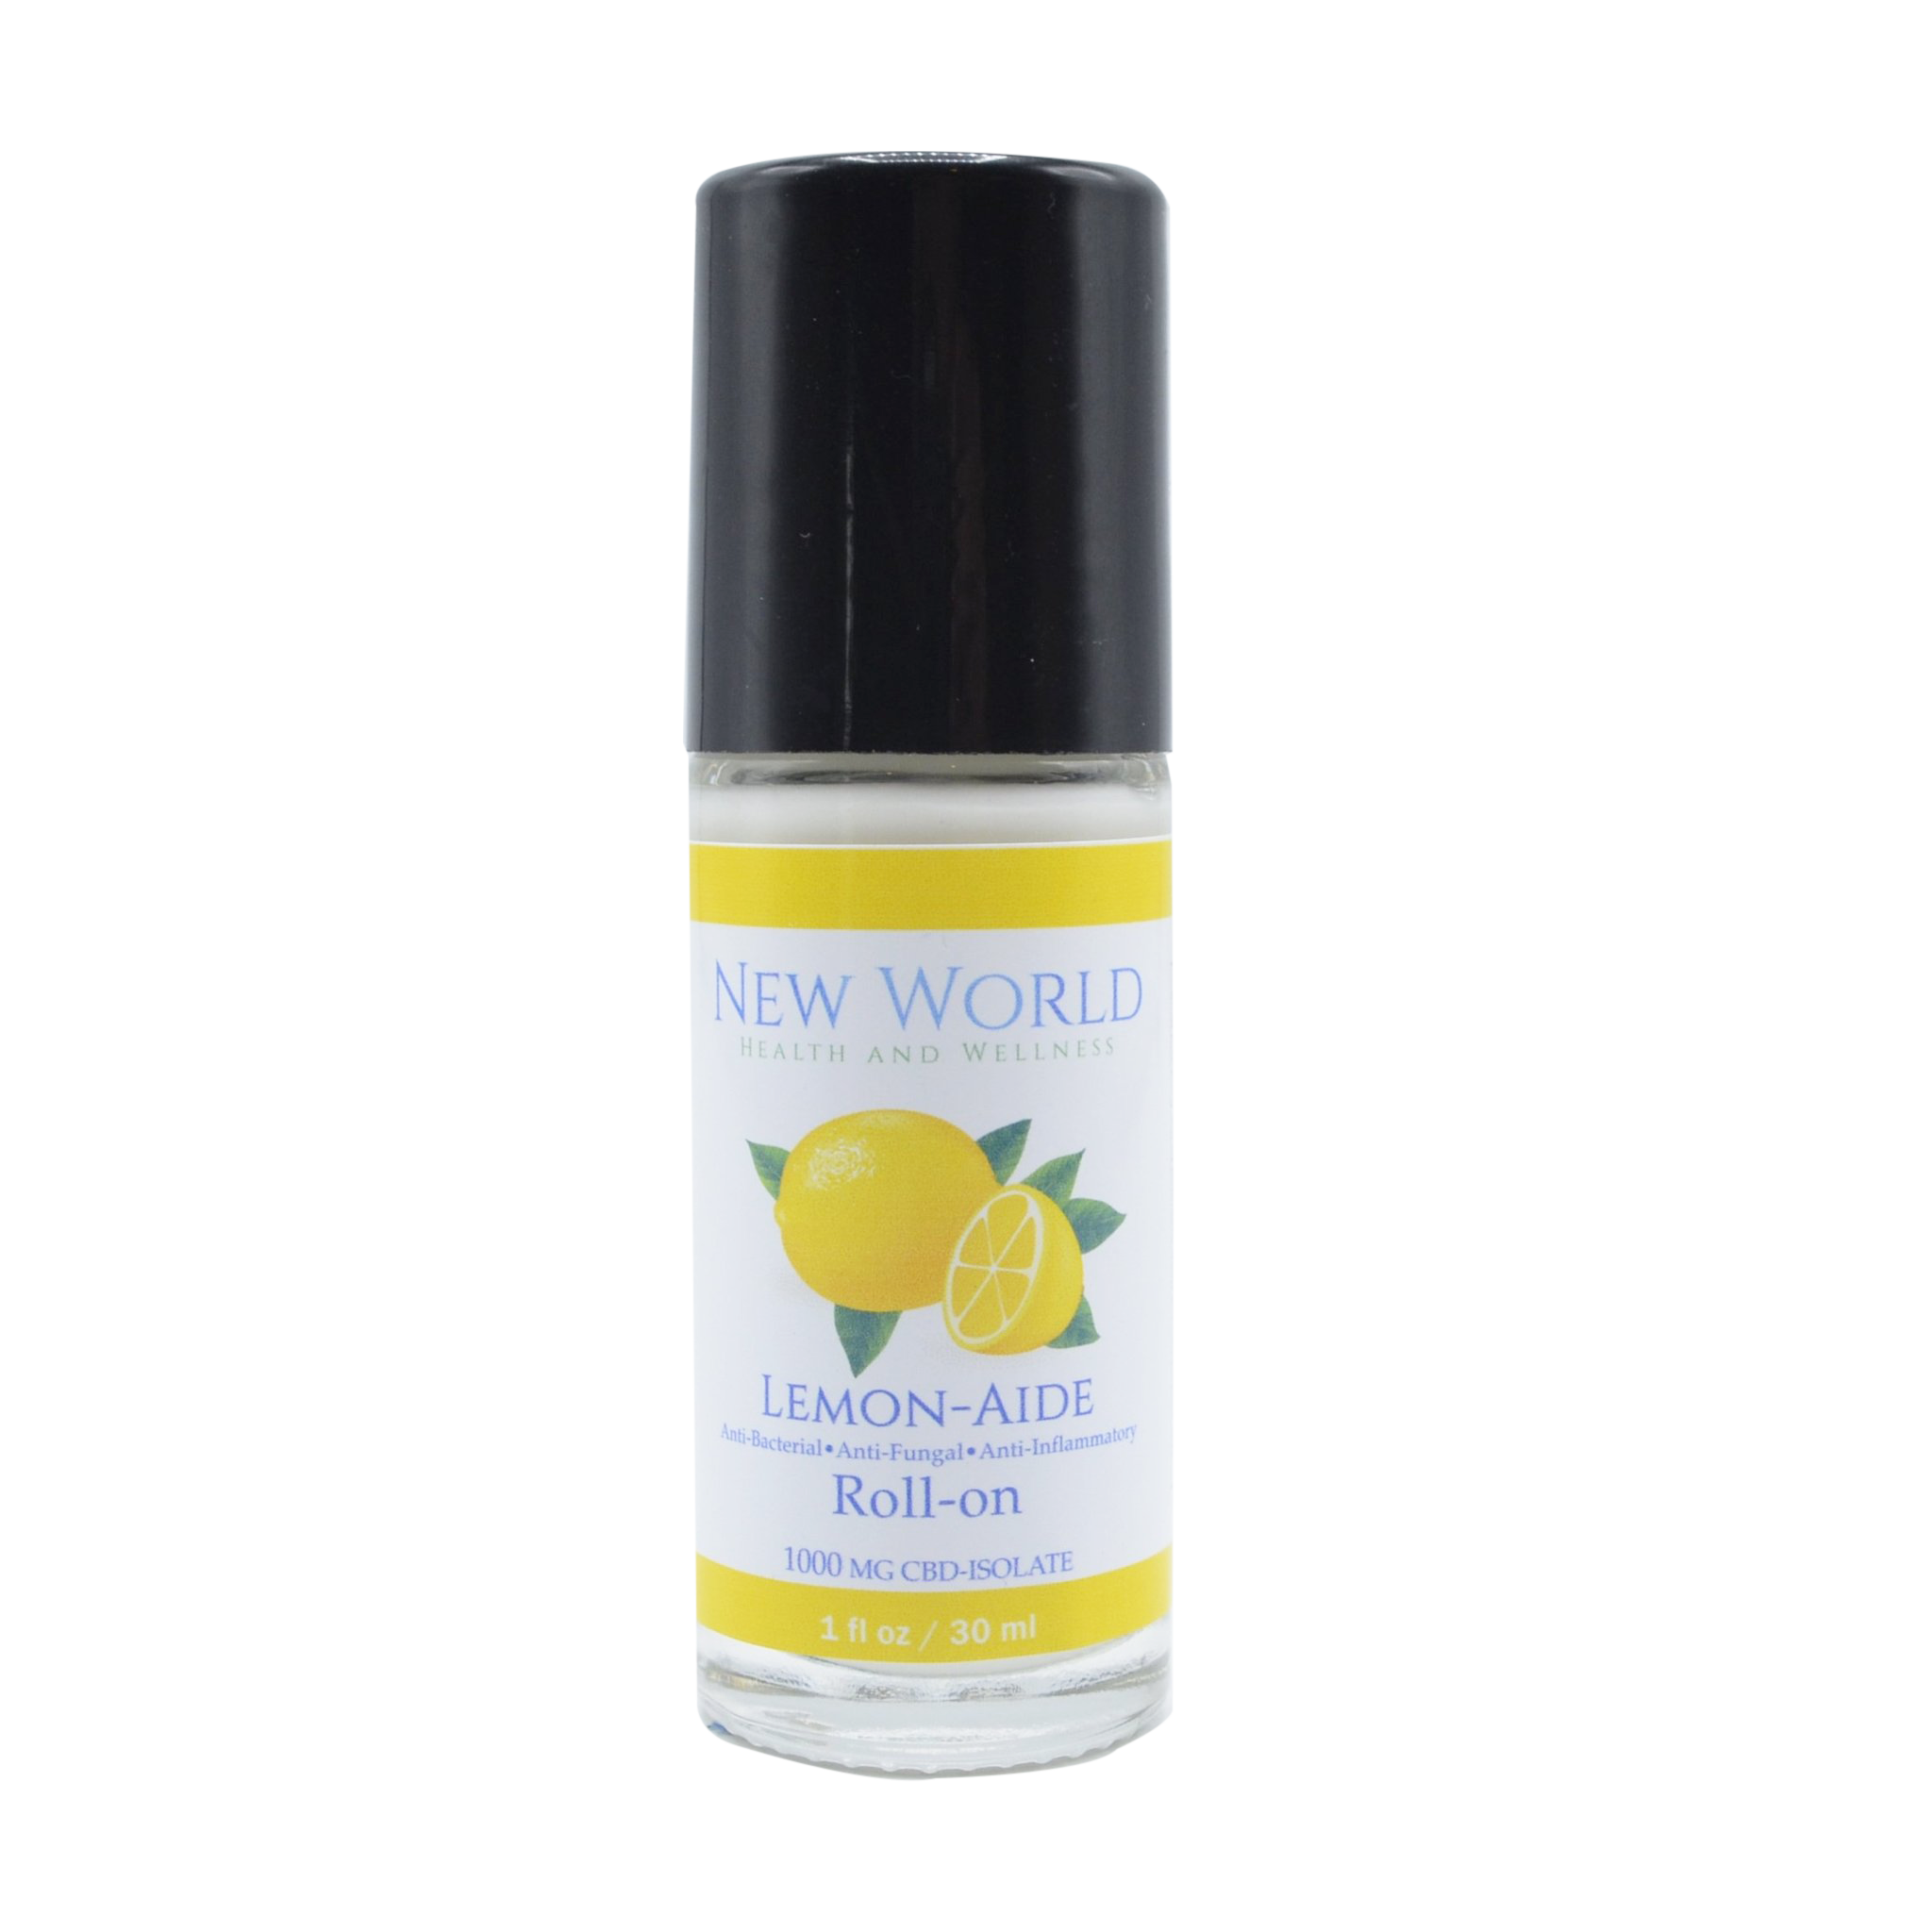 Lemon-Aide 1000mg CBD Roll-On